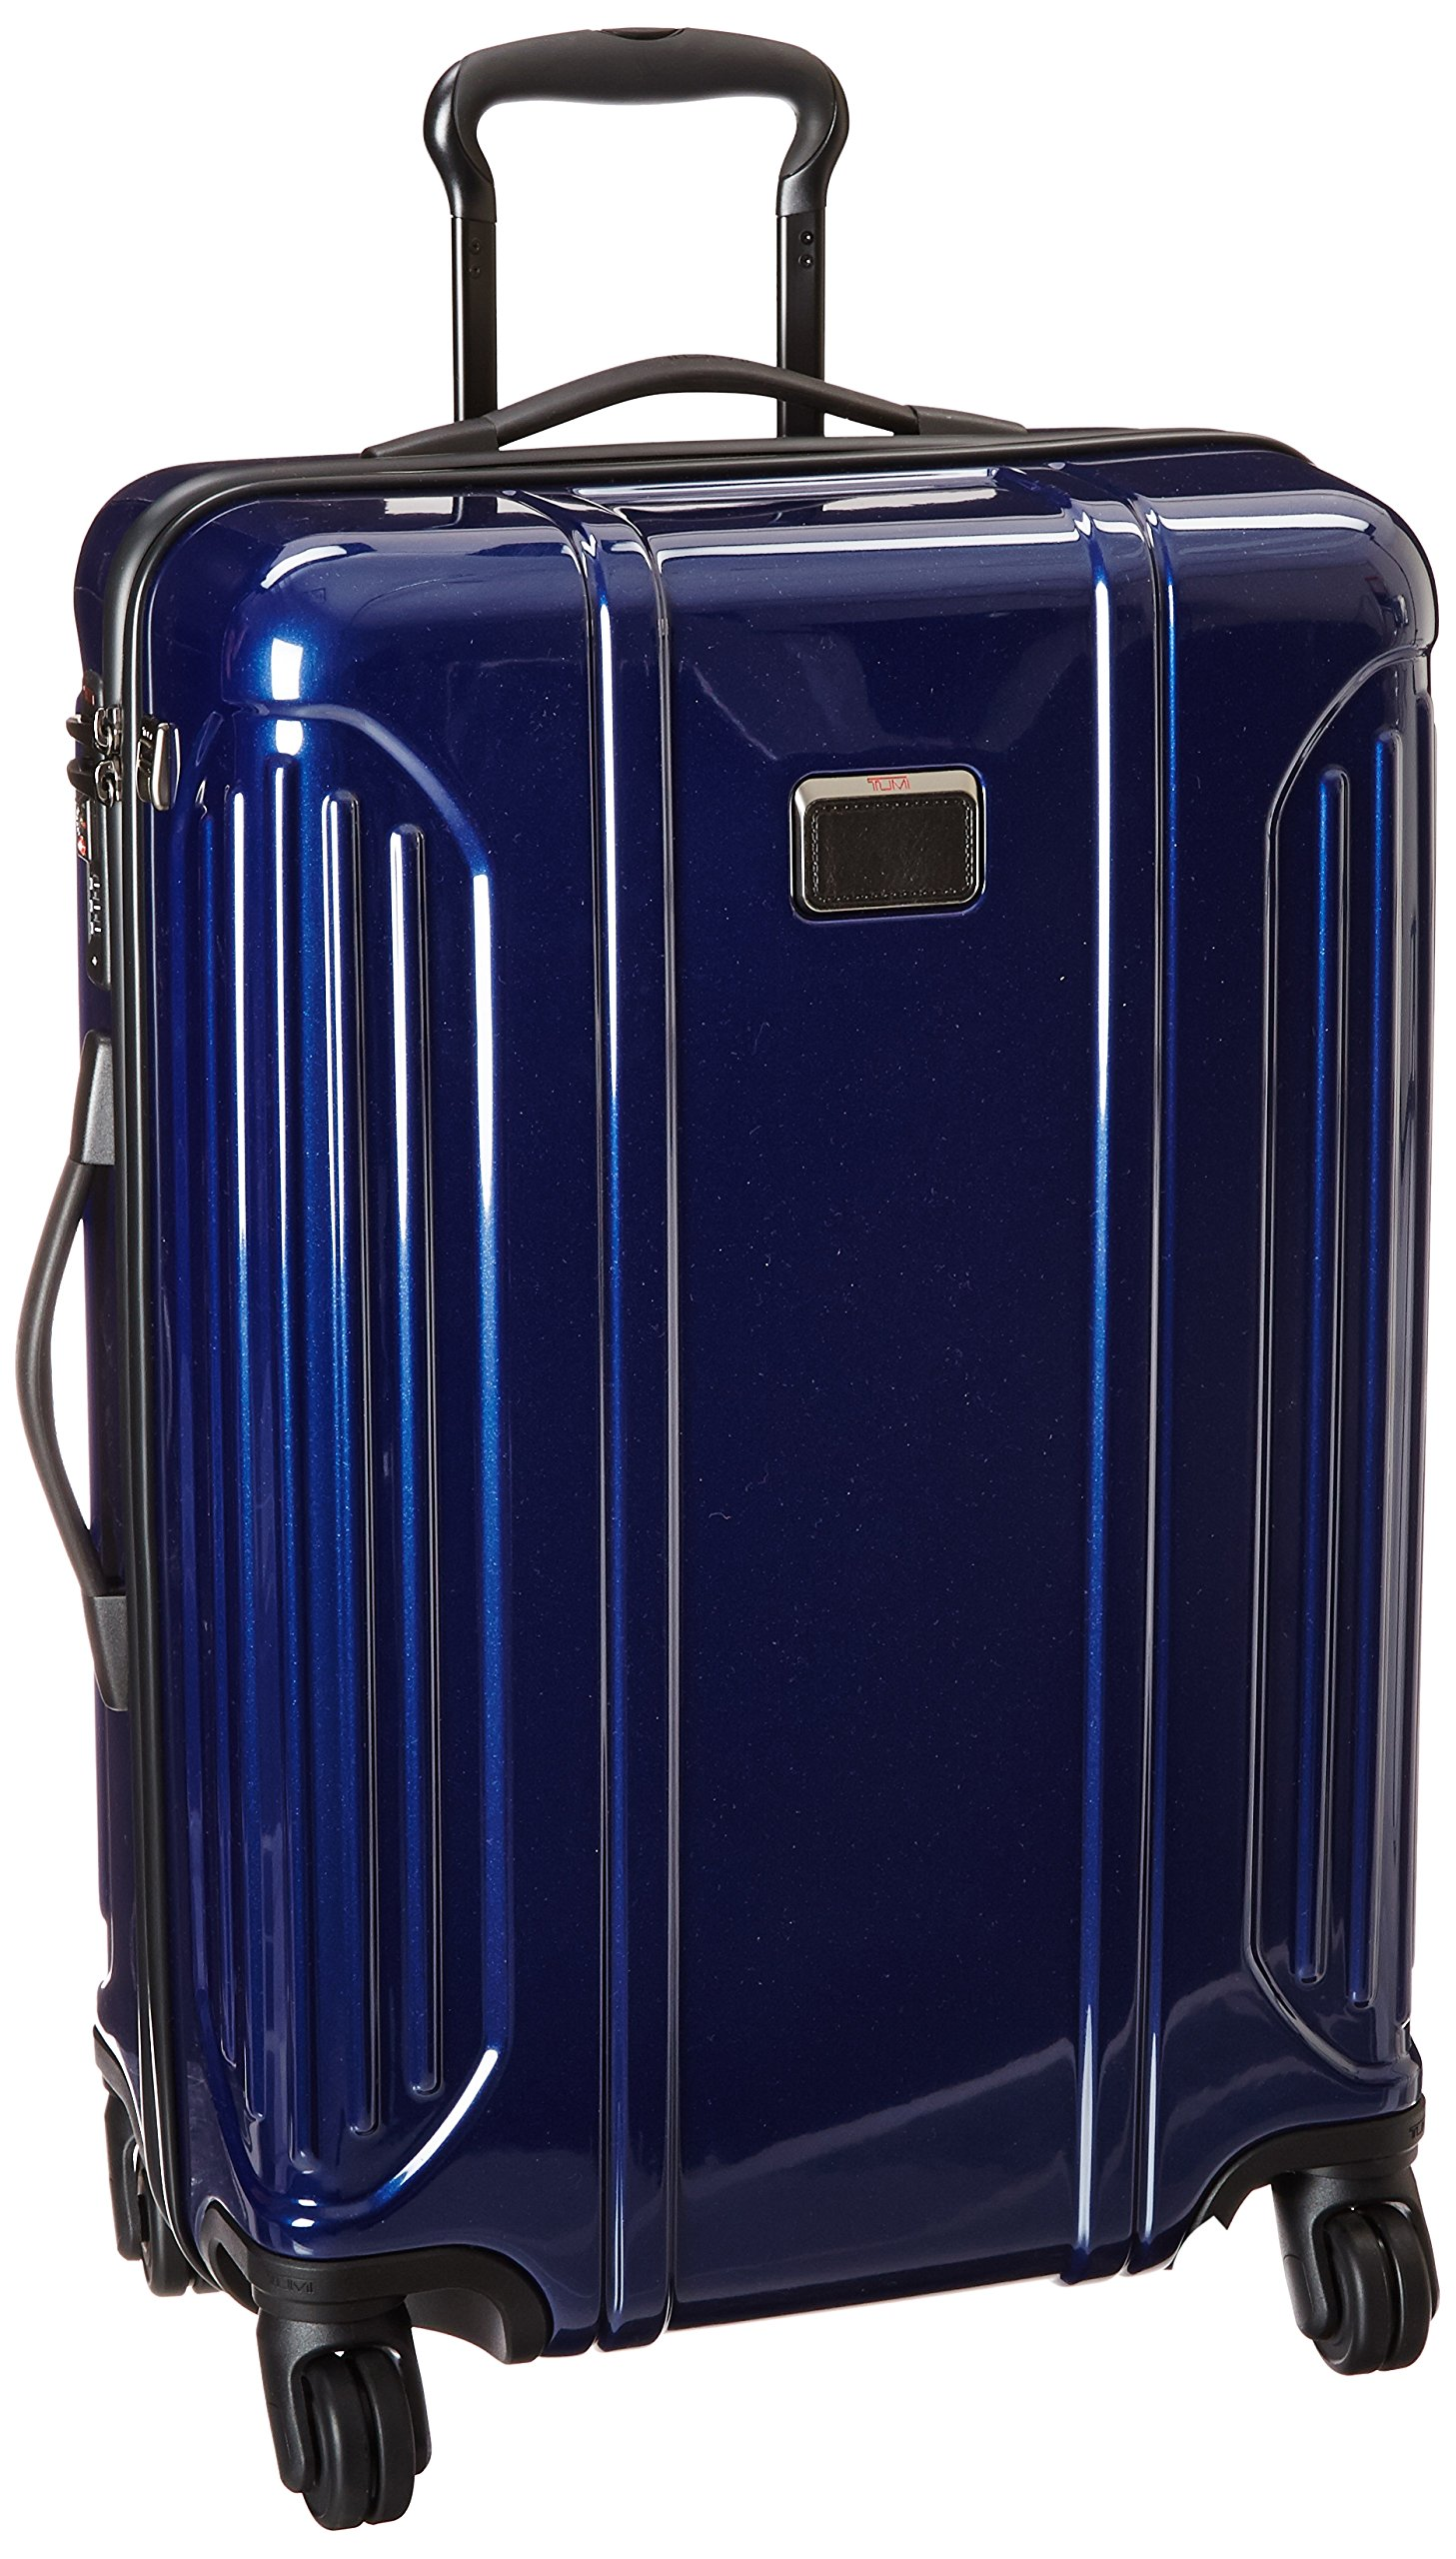 Tumi Vapor Lite Short Trip Packing Case, Navy, One Size